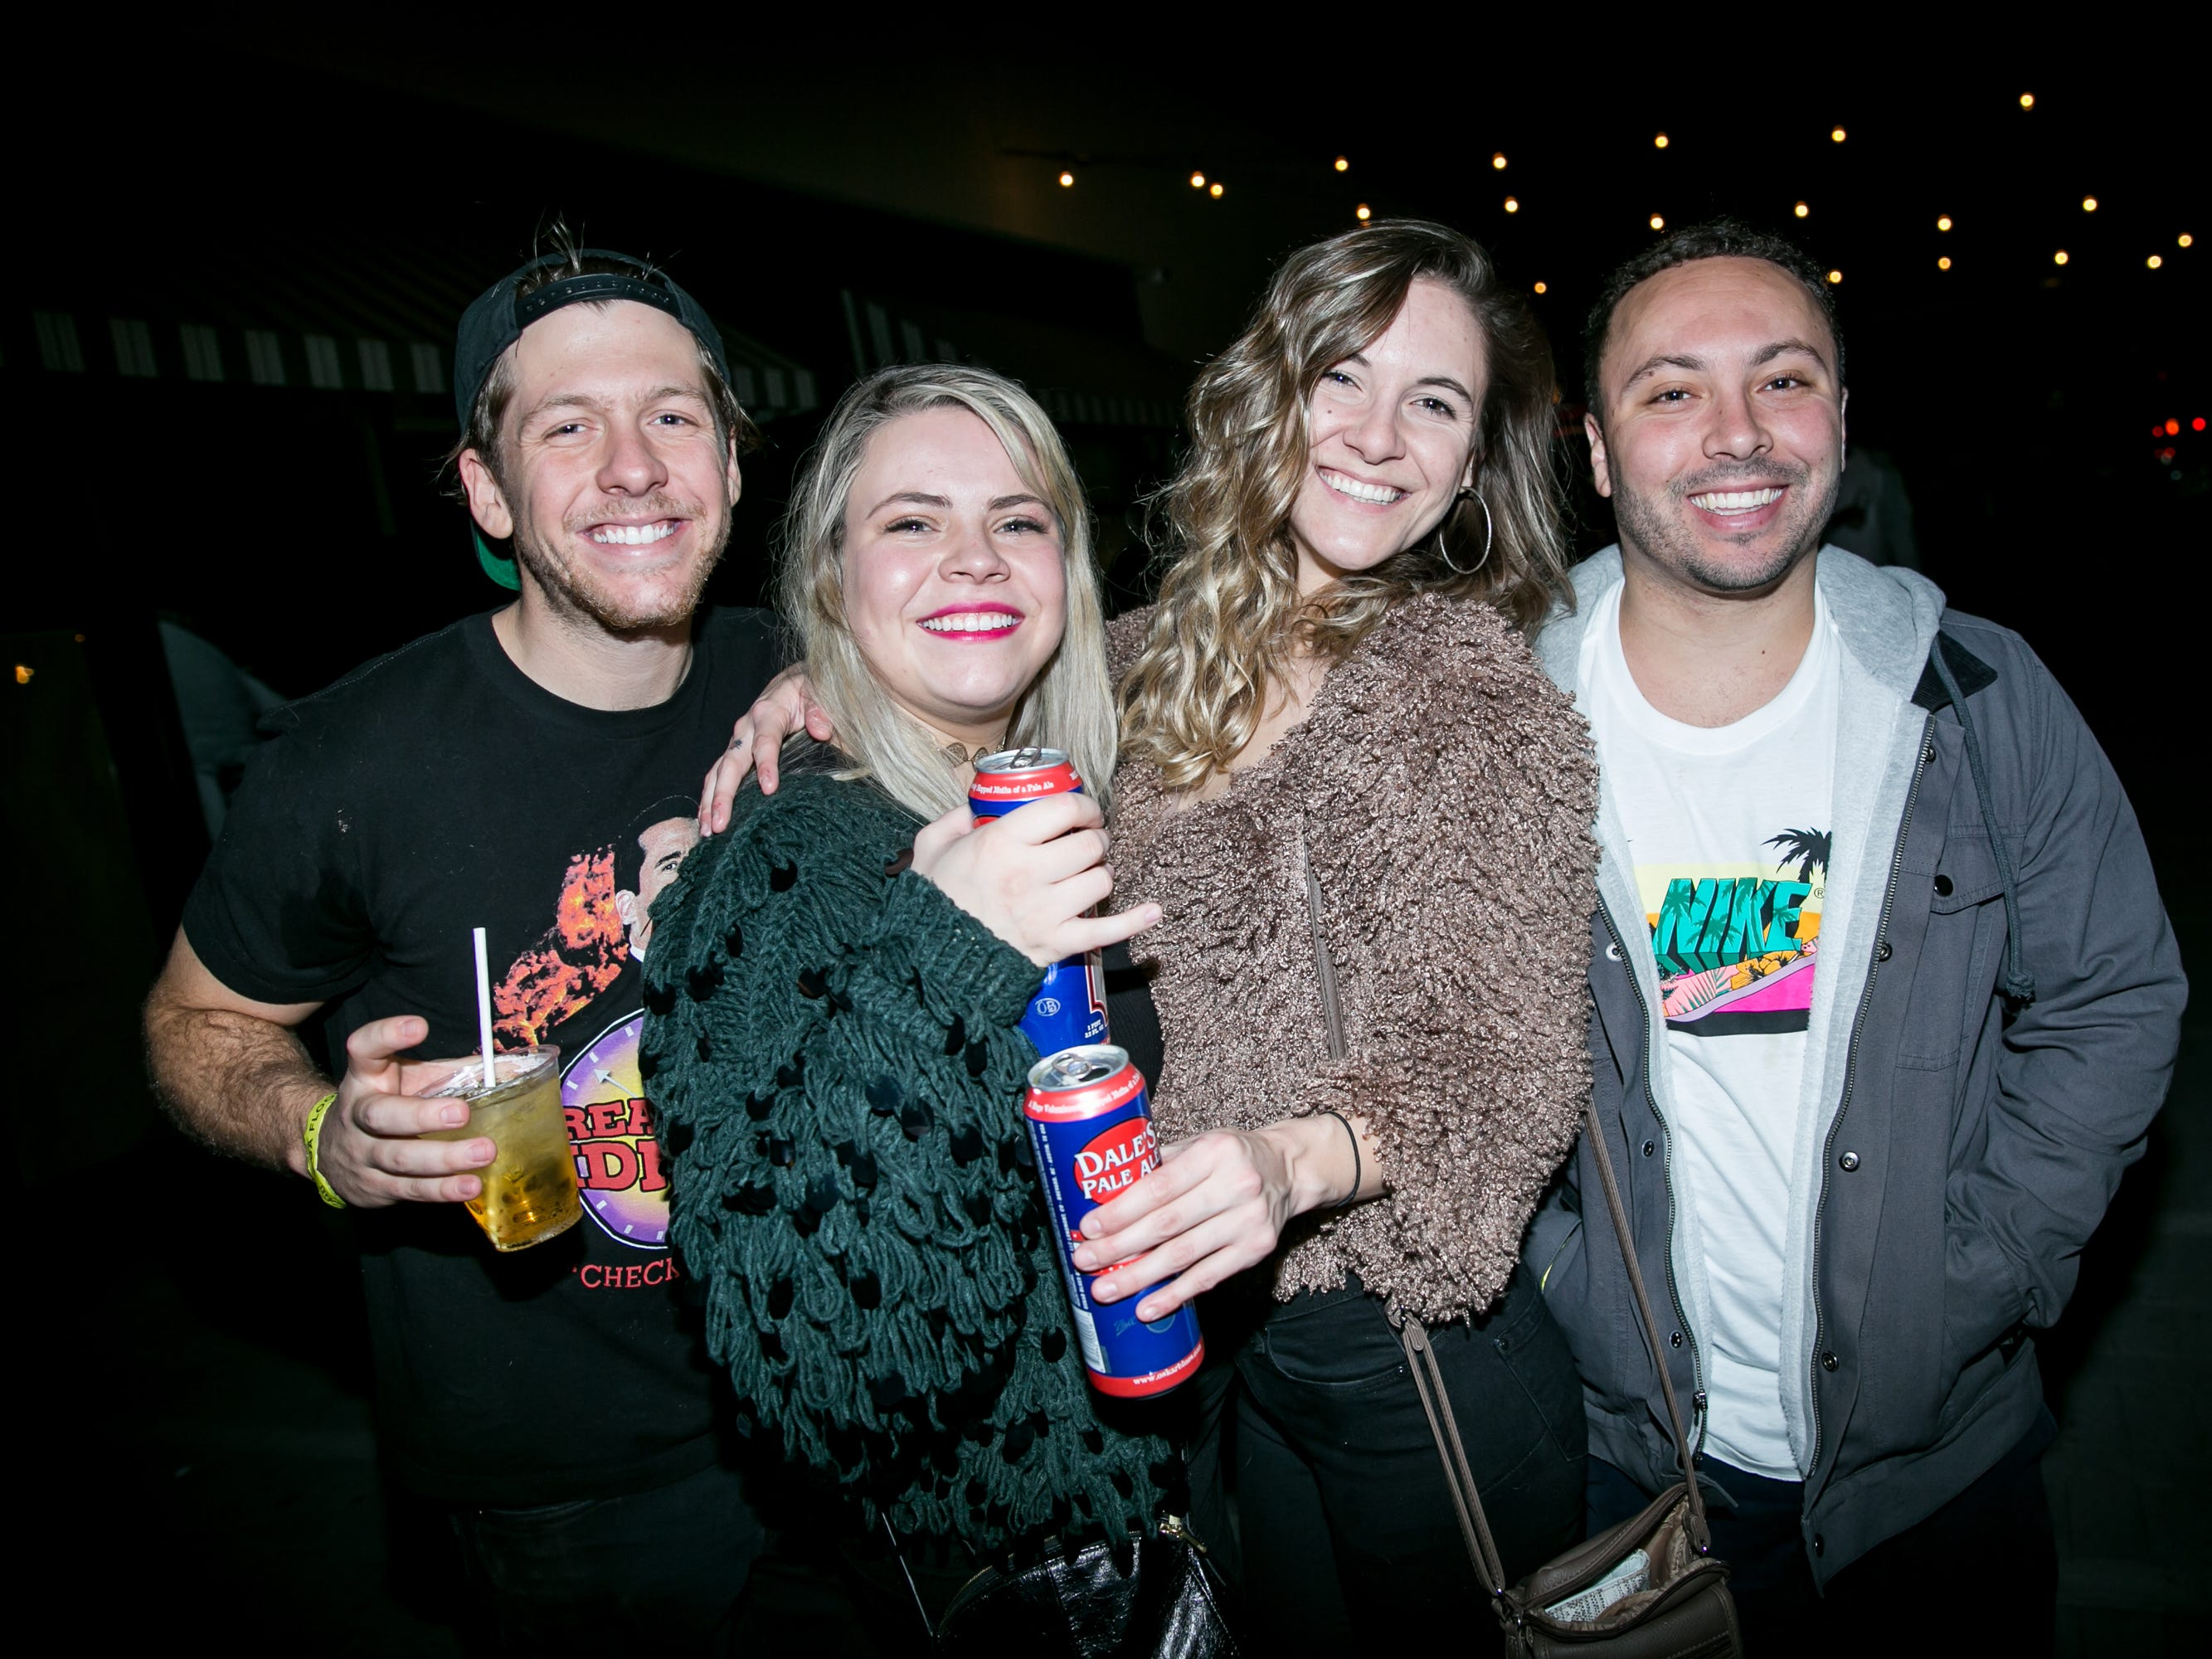 They used some Fuelbands to see how long the run had been during Drake Night: Fake Real Love at the Van Buren on Feb. 9, 2019.